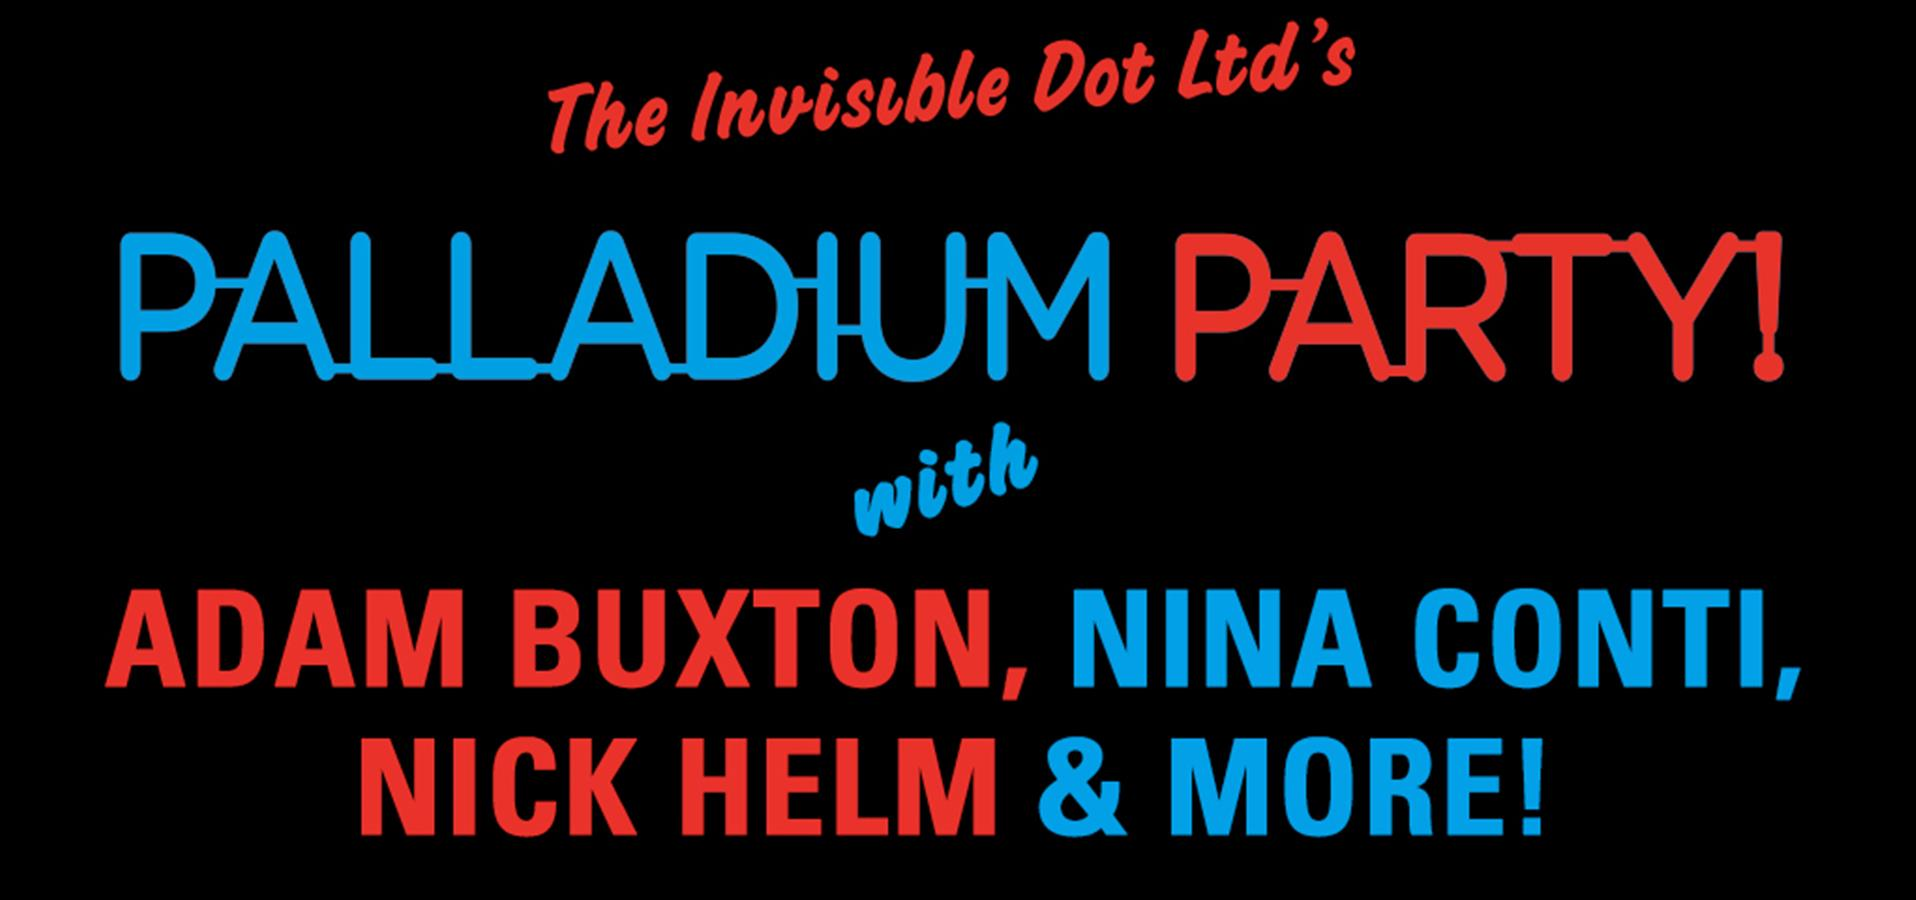 The Invisible Dot's Palladium Party! gallery image